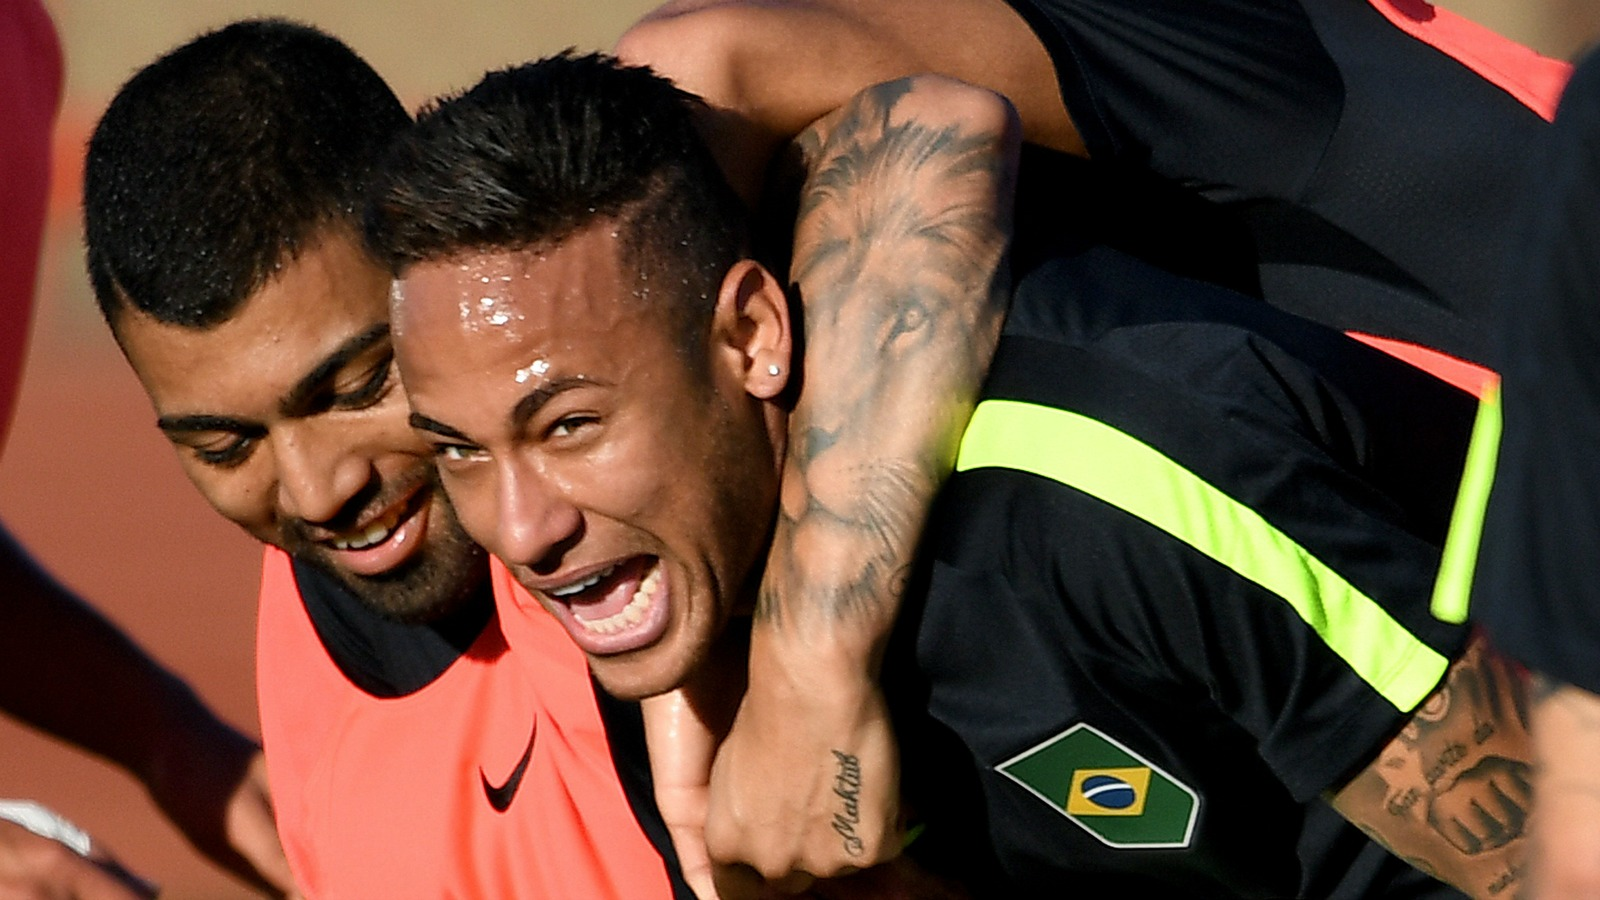 Brazil teammates Neymar and Gabriel Jesus reveal matching tattoos